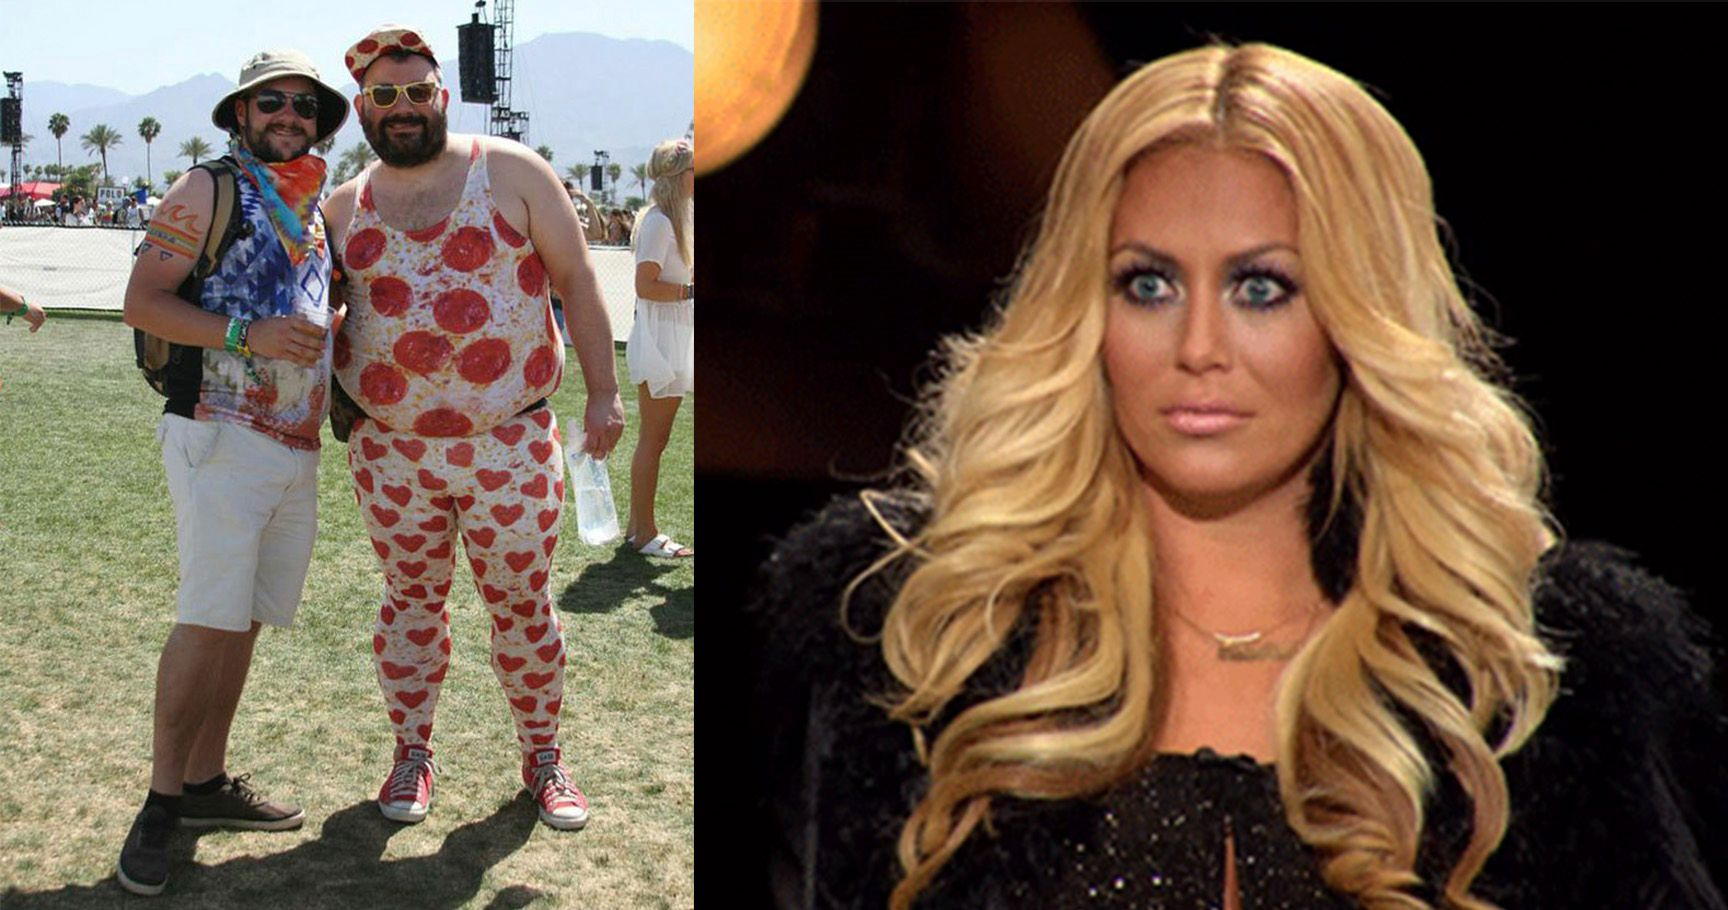 15 Times People Went Way Too Far At Coachella